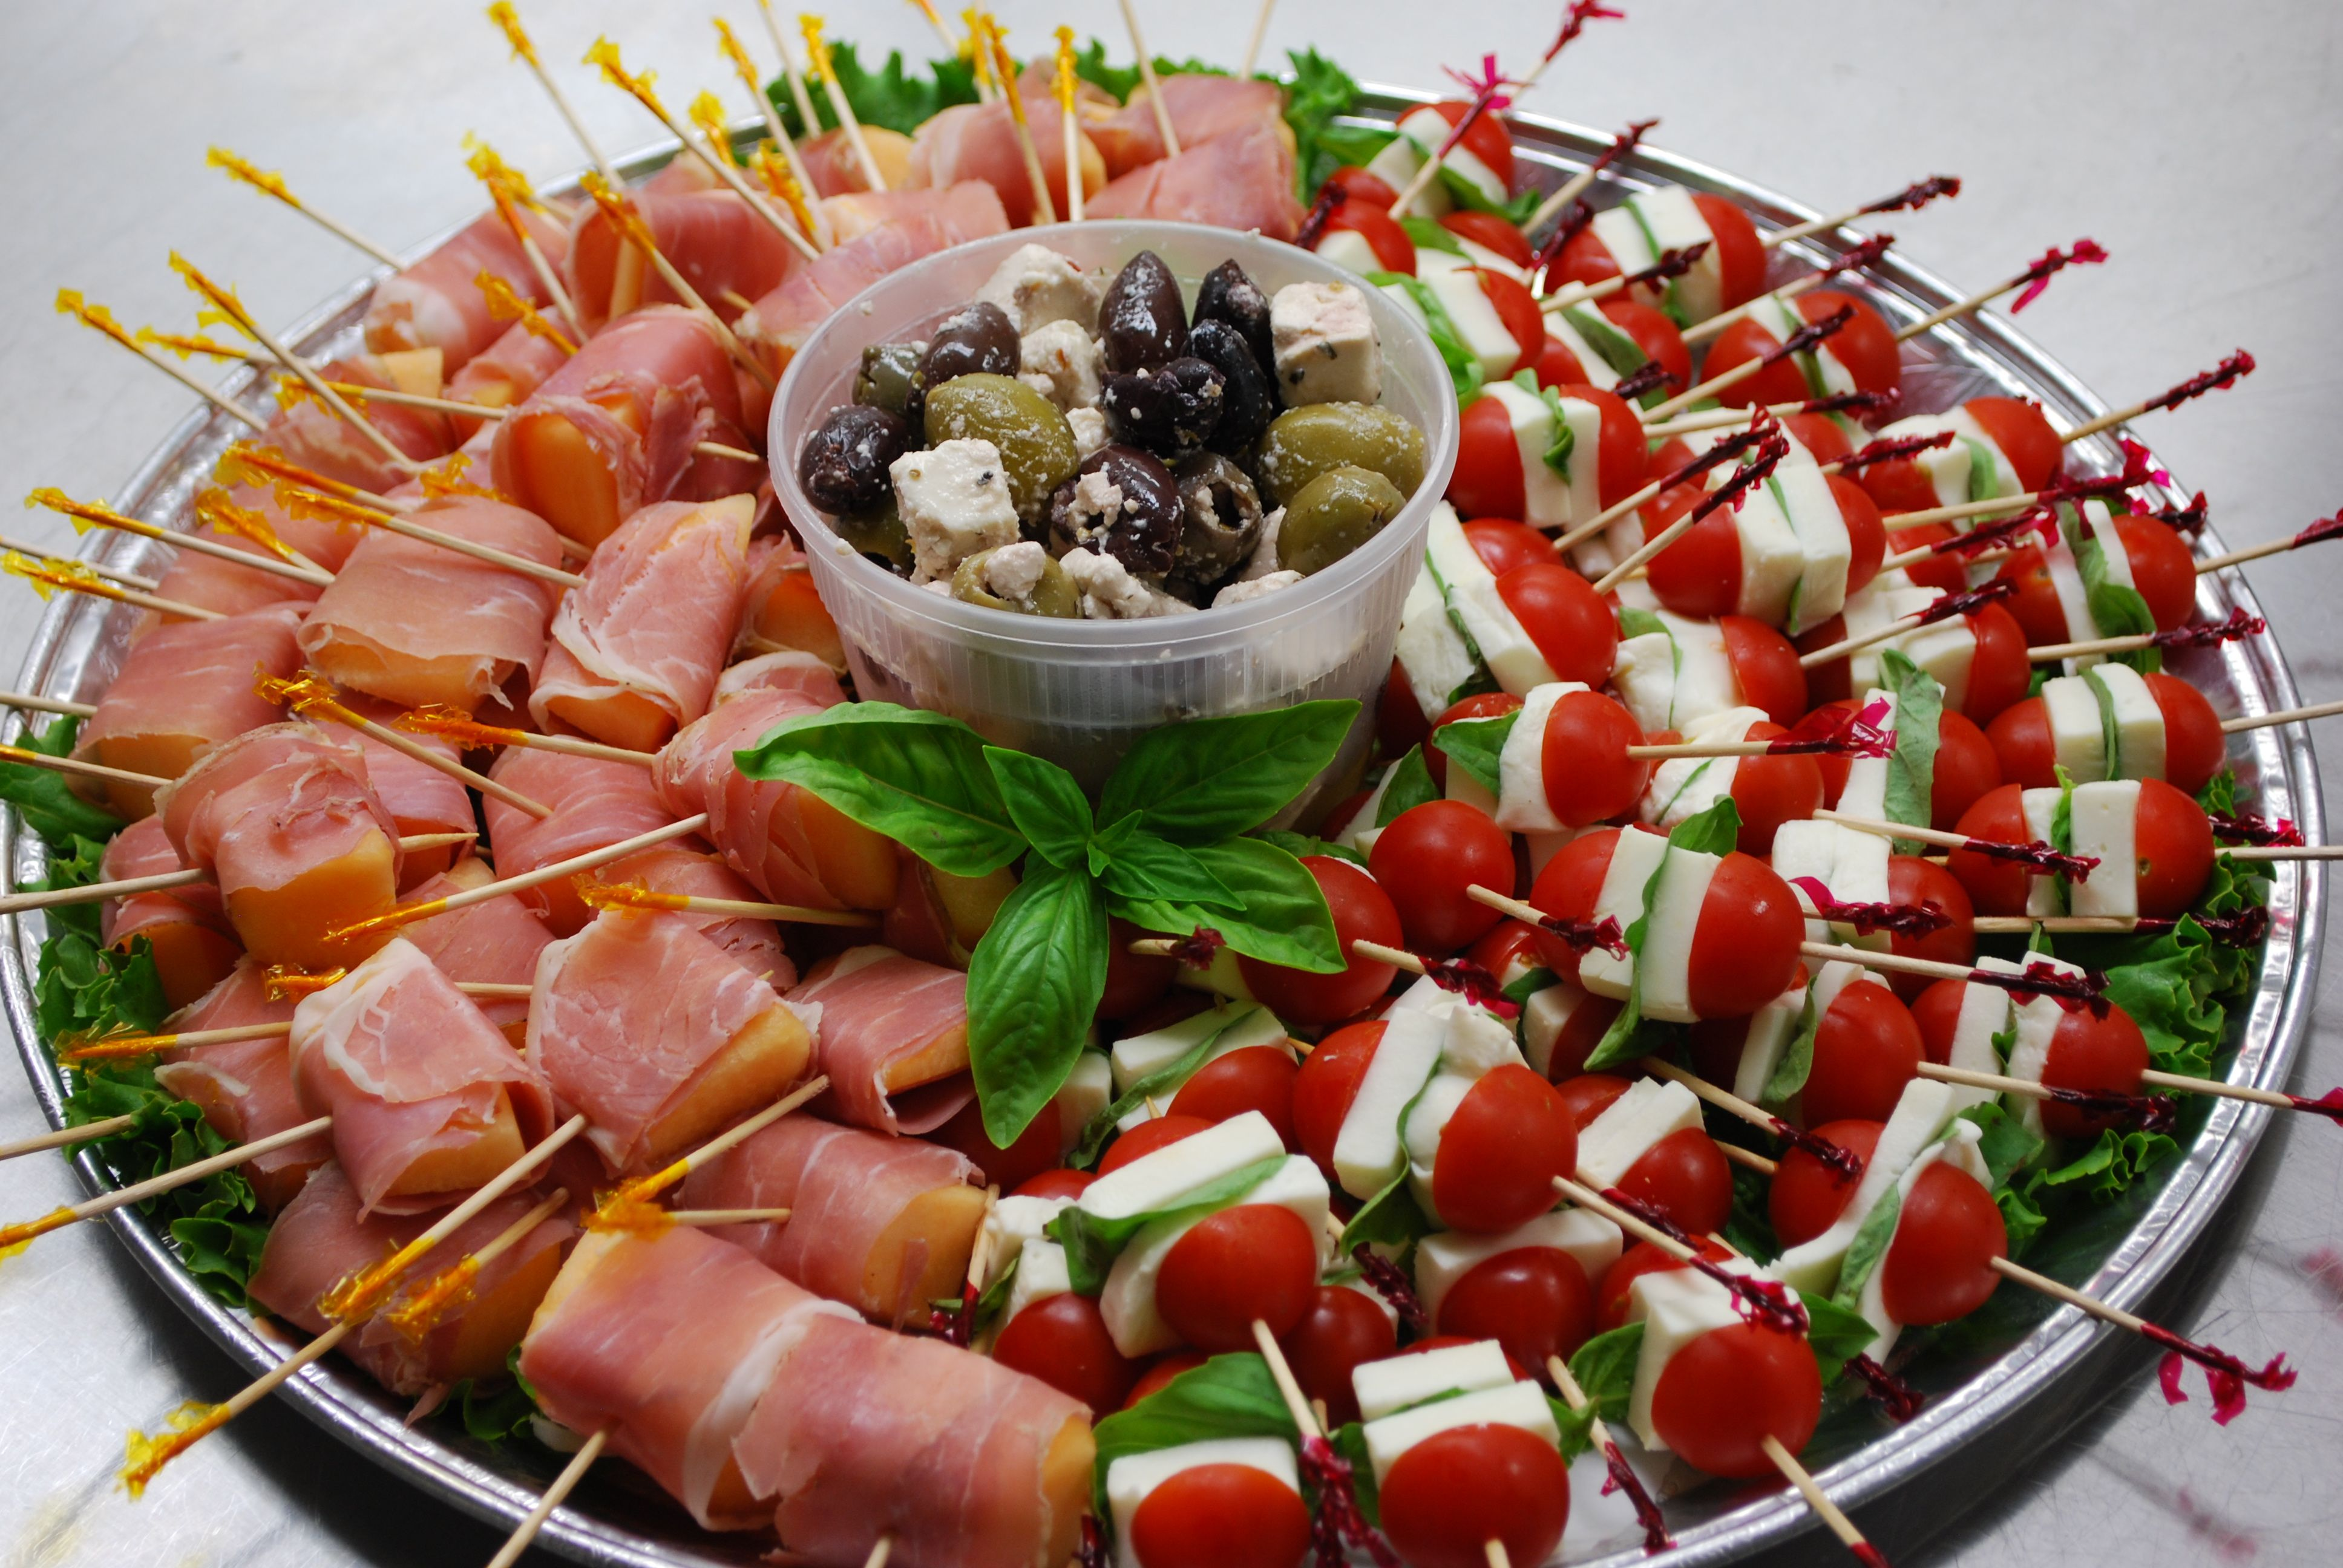 proscuetto melon caprese skewers w tri olives feta party platter kay 39 s cuisine for the. Black Bedroom Furniture Sets. Home Design Ideas